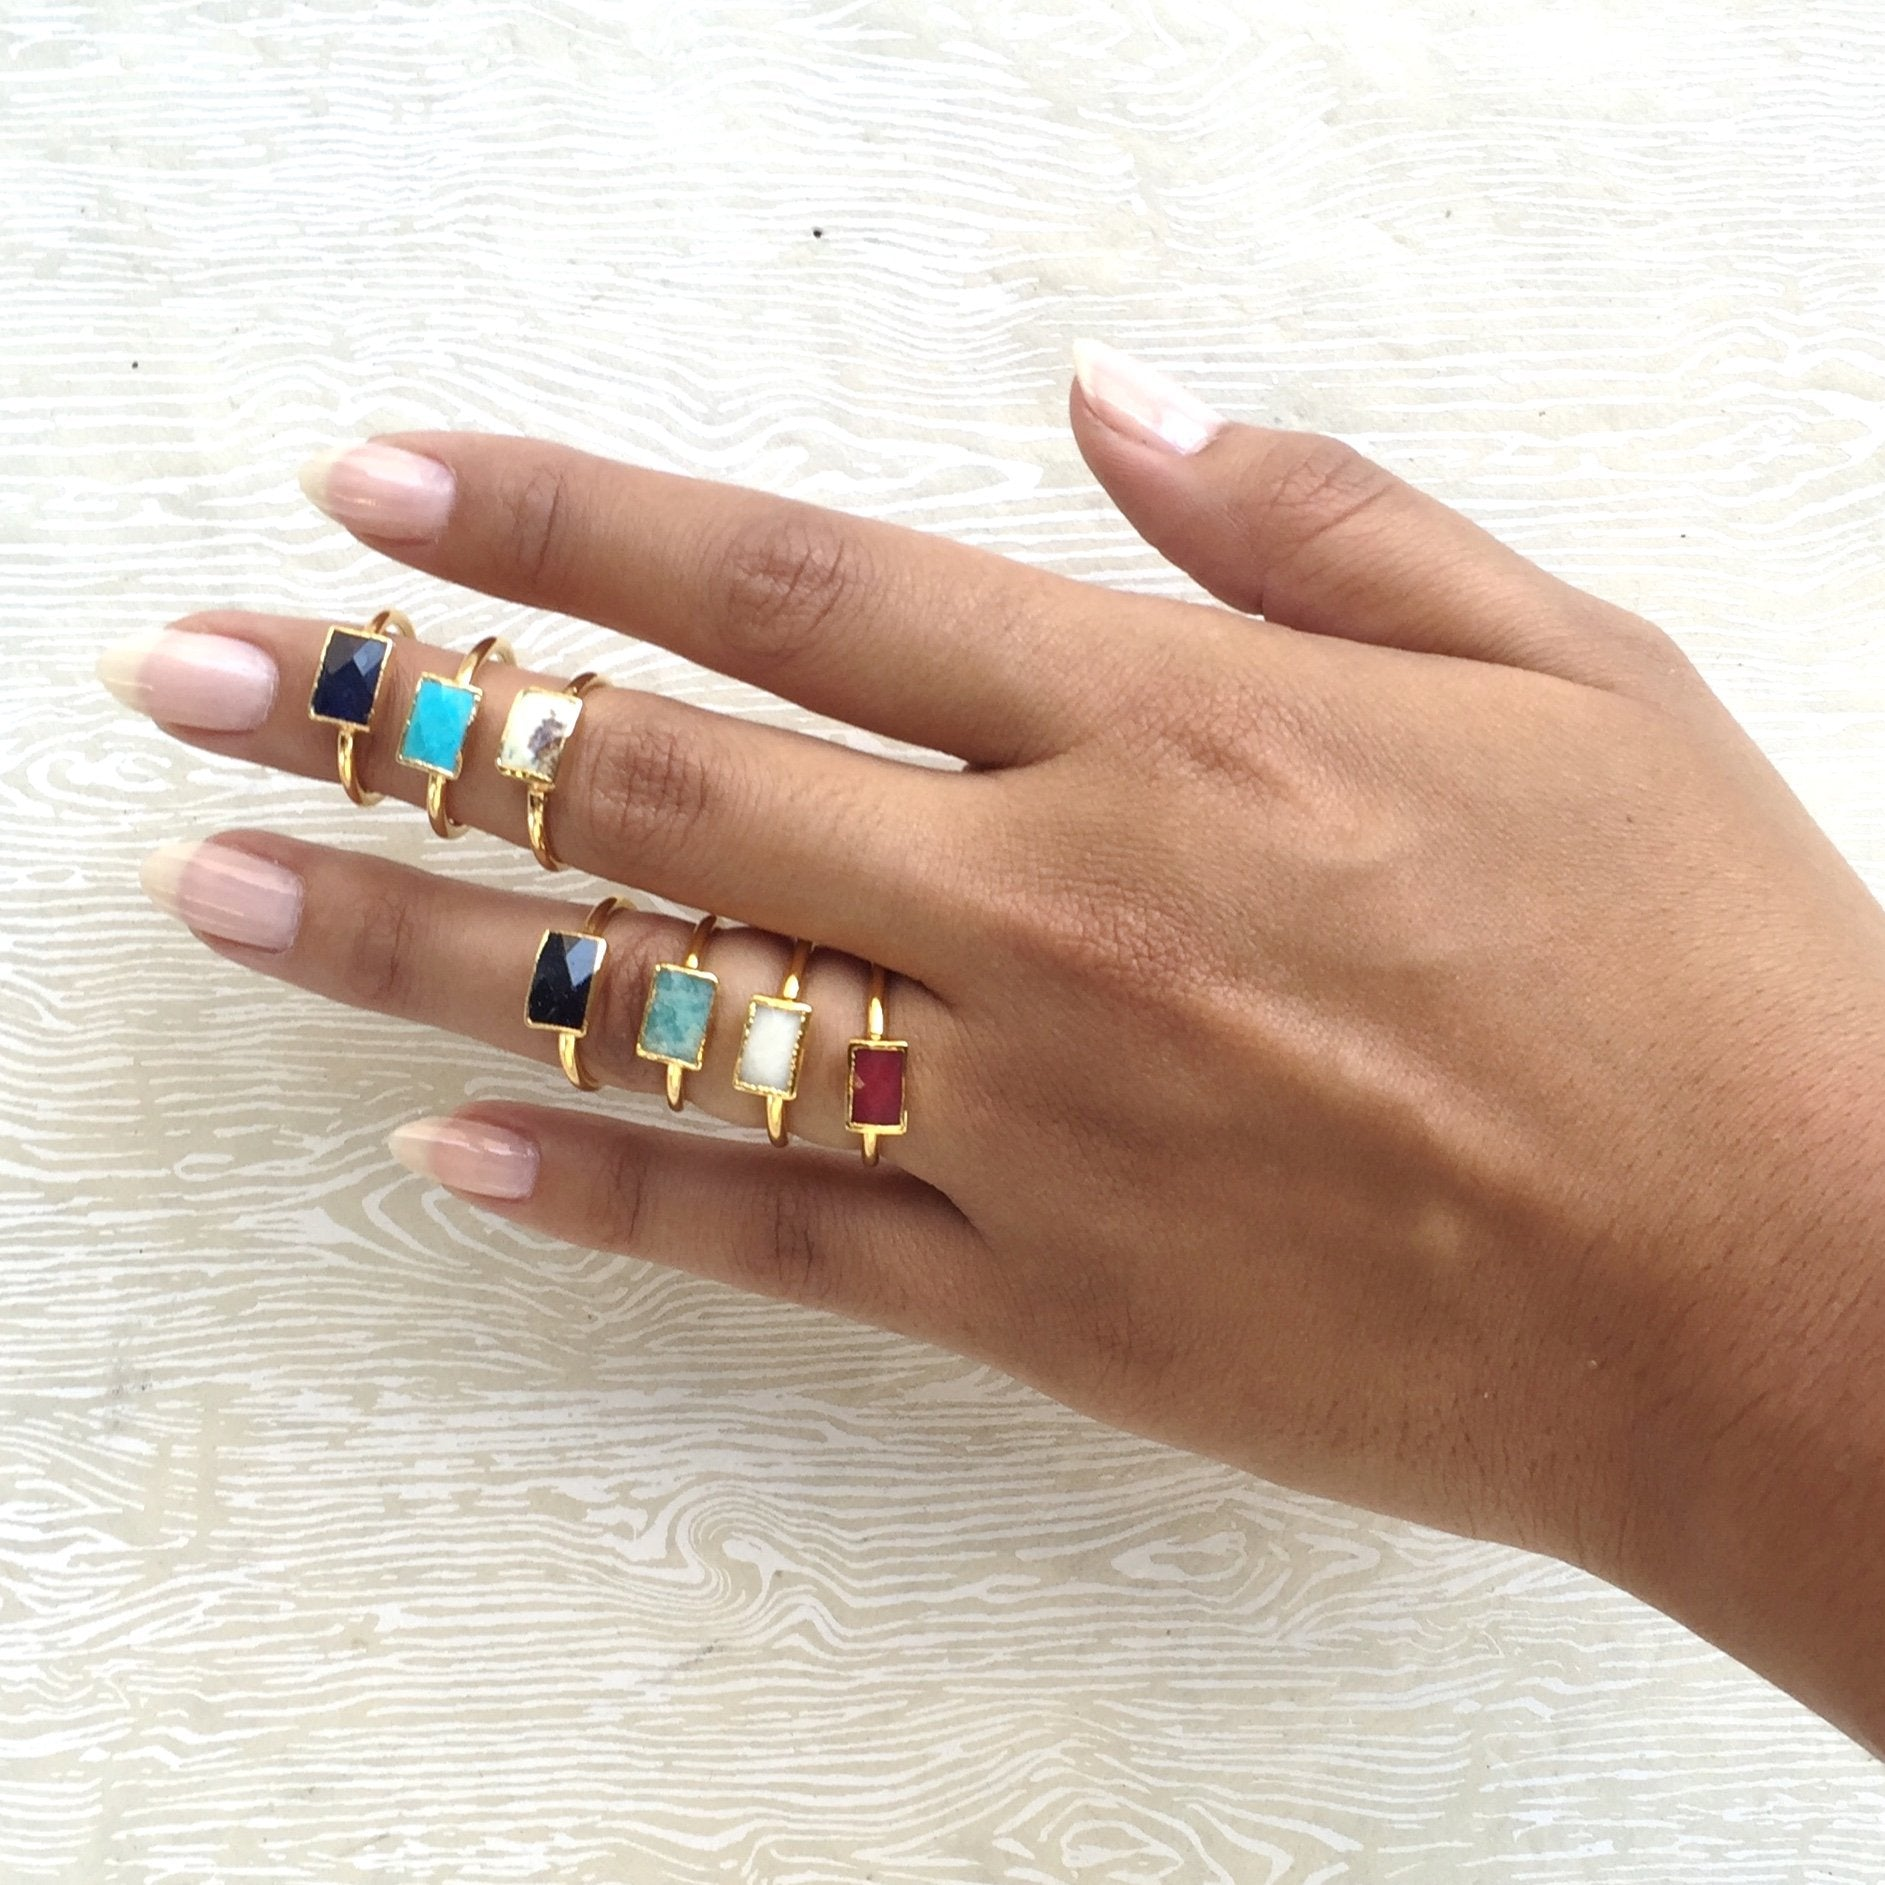 semi-precious stone stacking rings on hand